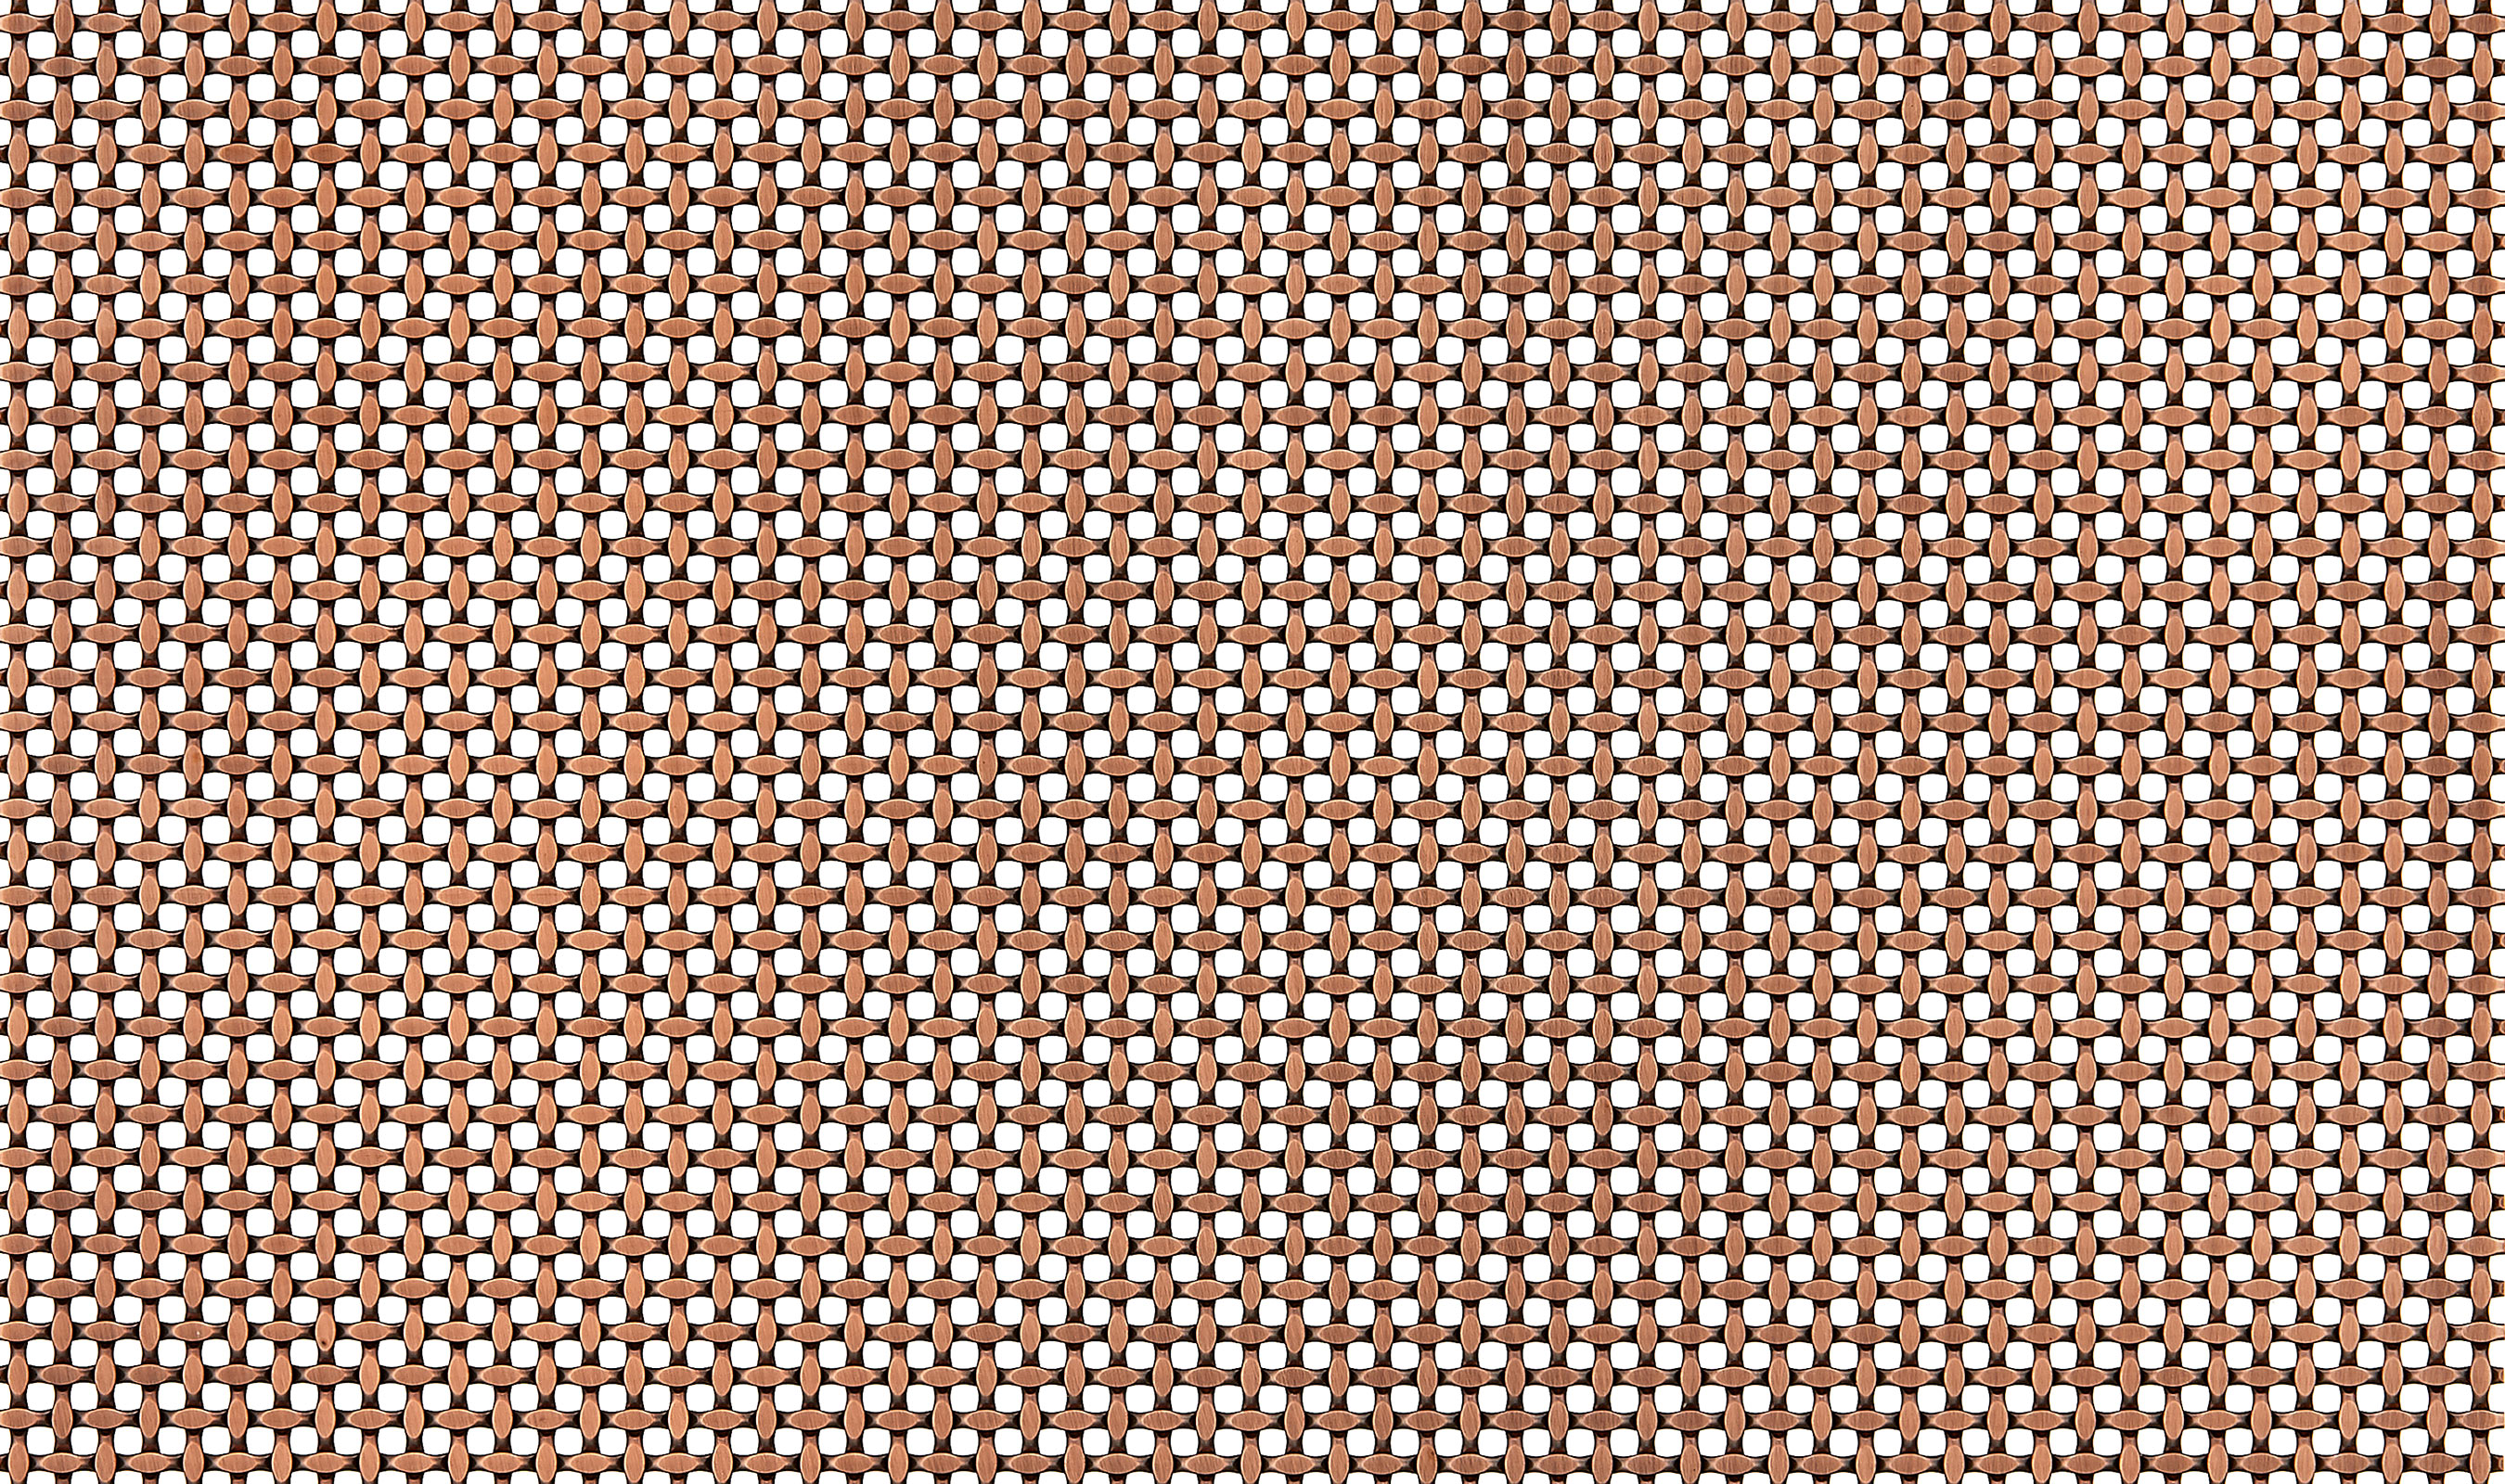 S-55 Antique Copper Plated wire mesh pattern